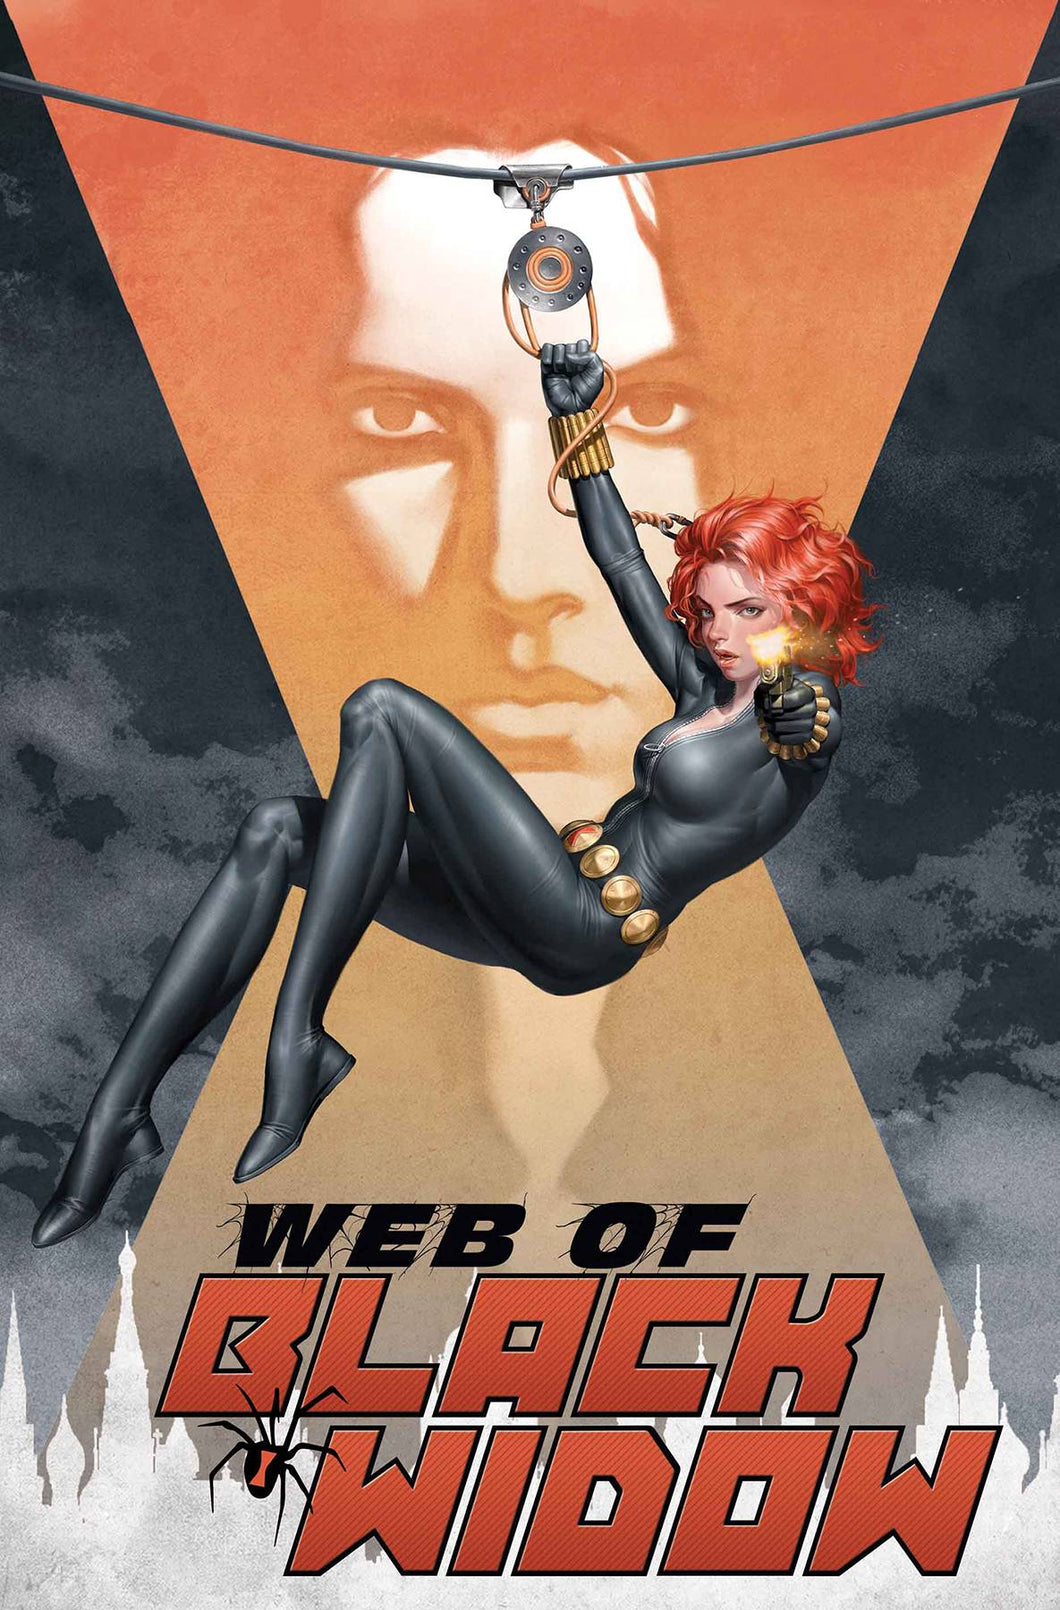 WEB OF BLACK WIDOW #1 (OF 5) 09/04/19 FOC 08/12/19